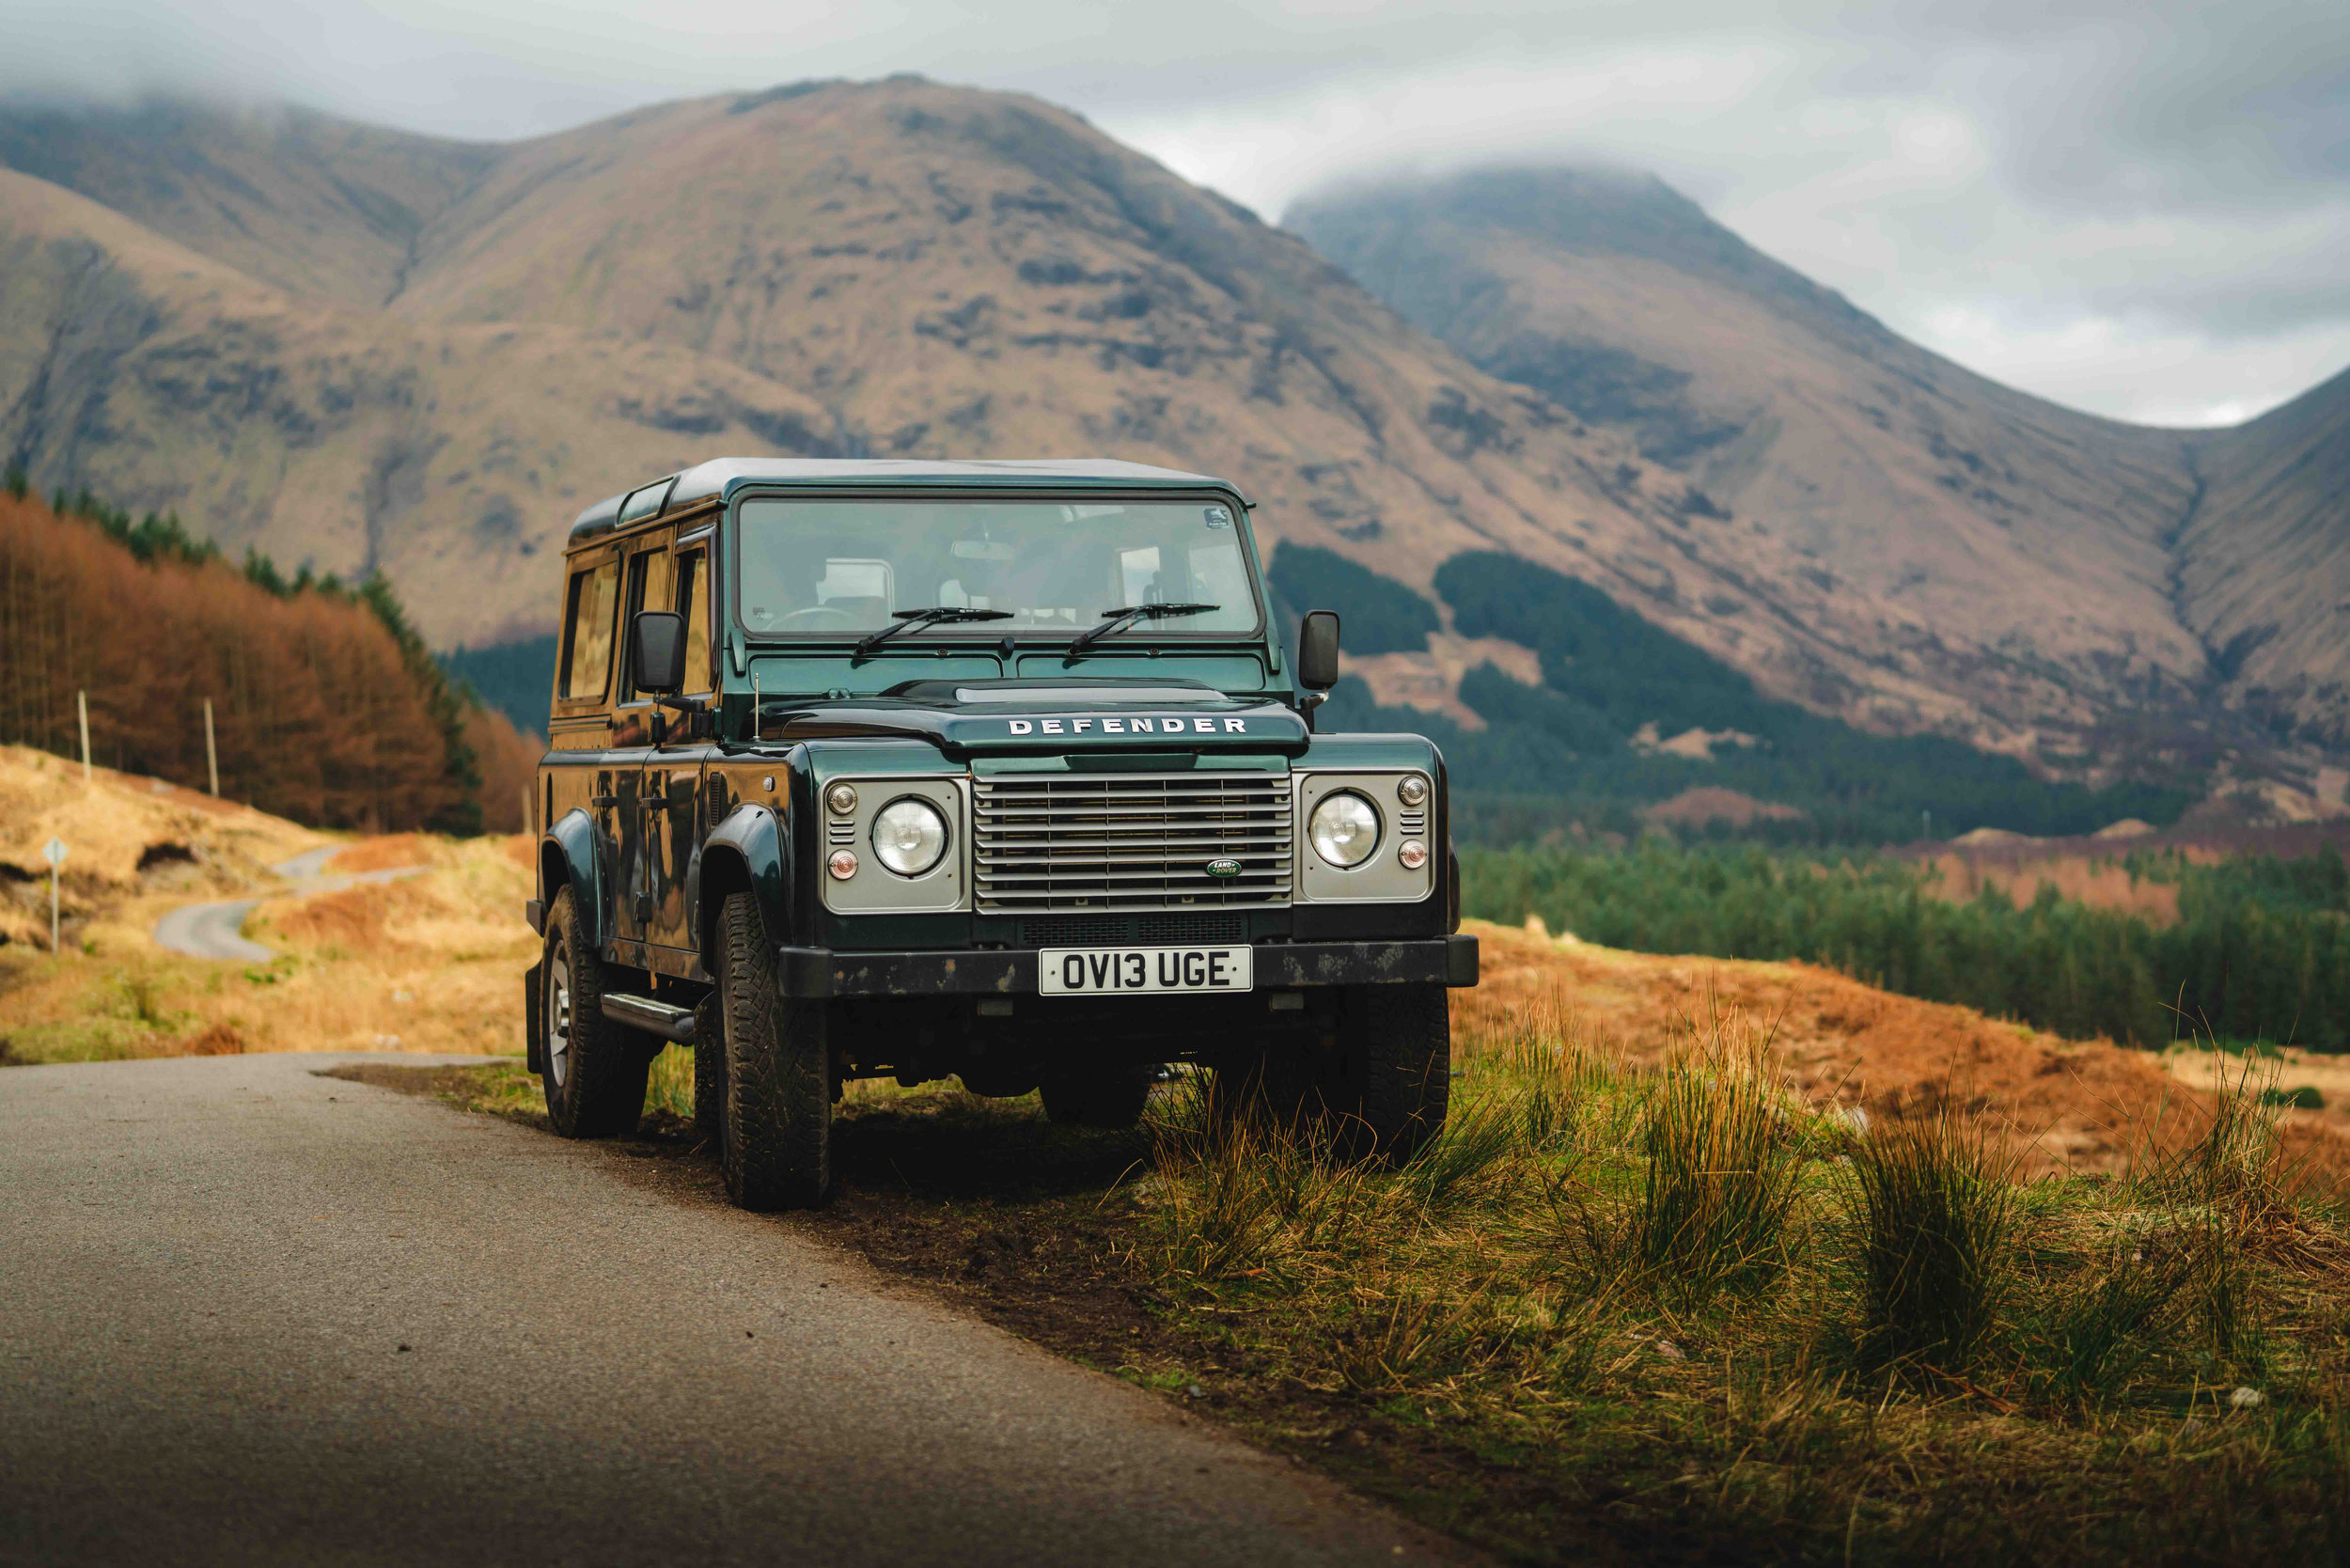 Land Rover Discovery in Scotland by sunset.